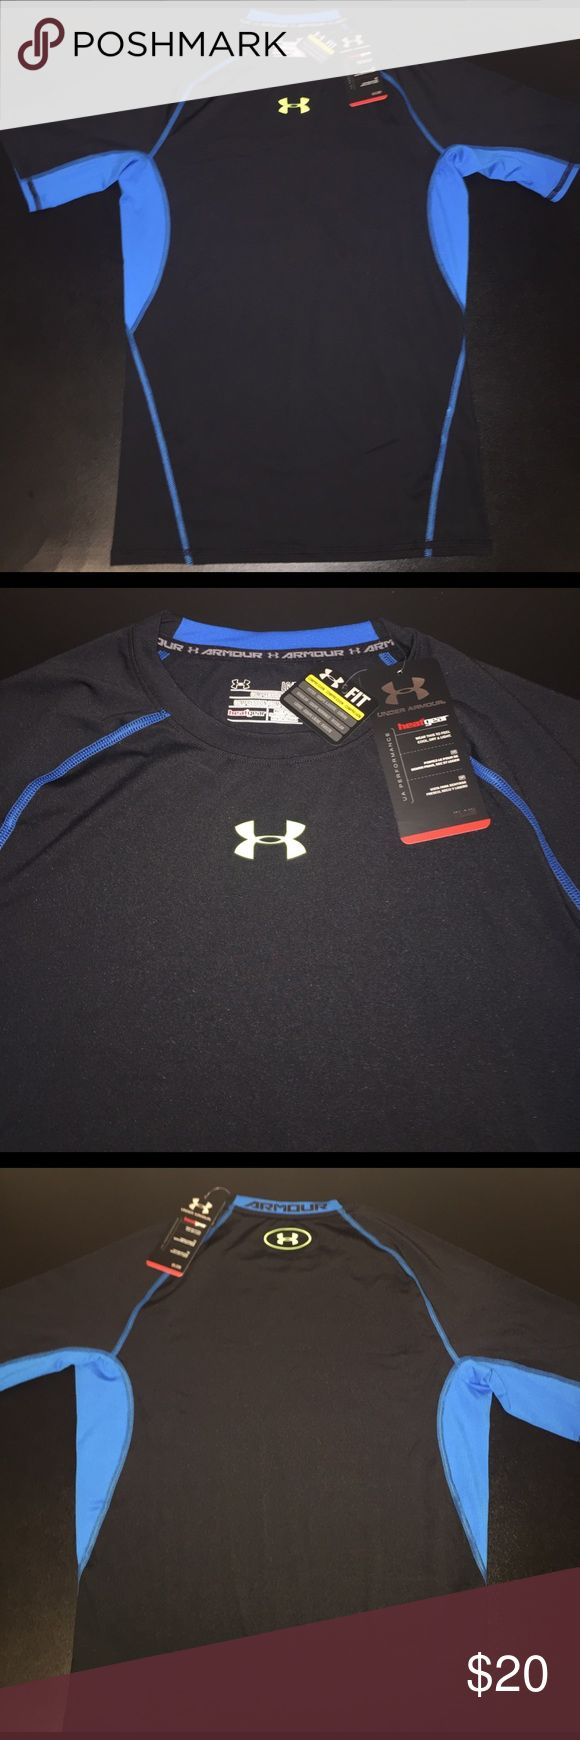 NWT Under Armour Men's Compression Heat Gear Shirt For sale is a NWT Under Armour Men's Compression Heat Gear Shirt. Item is in excellent condition, size Large and ready to be shipped. The top is black with blue accents and electric yellow UA logo. Under Armour Shirts Tees - Short Sleeve